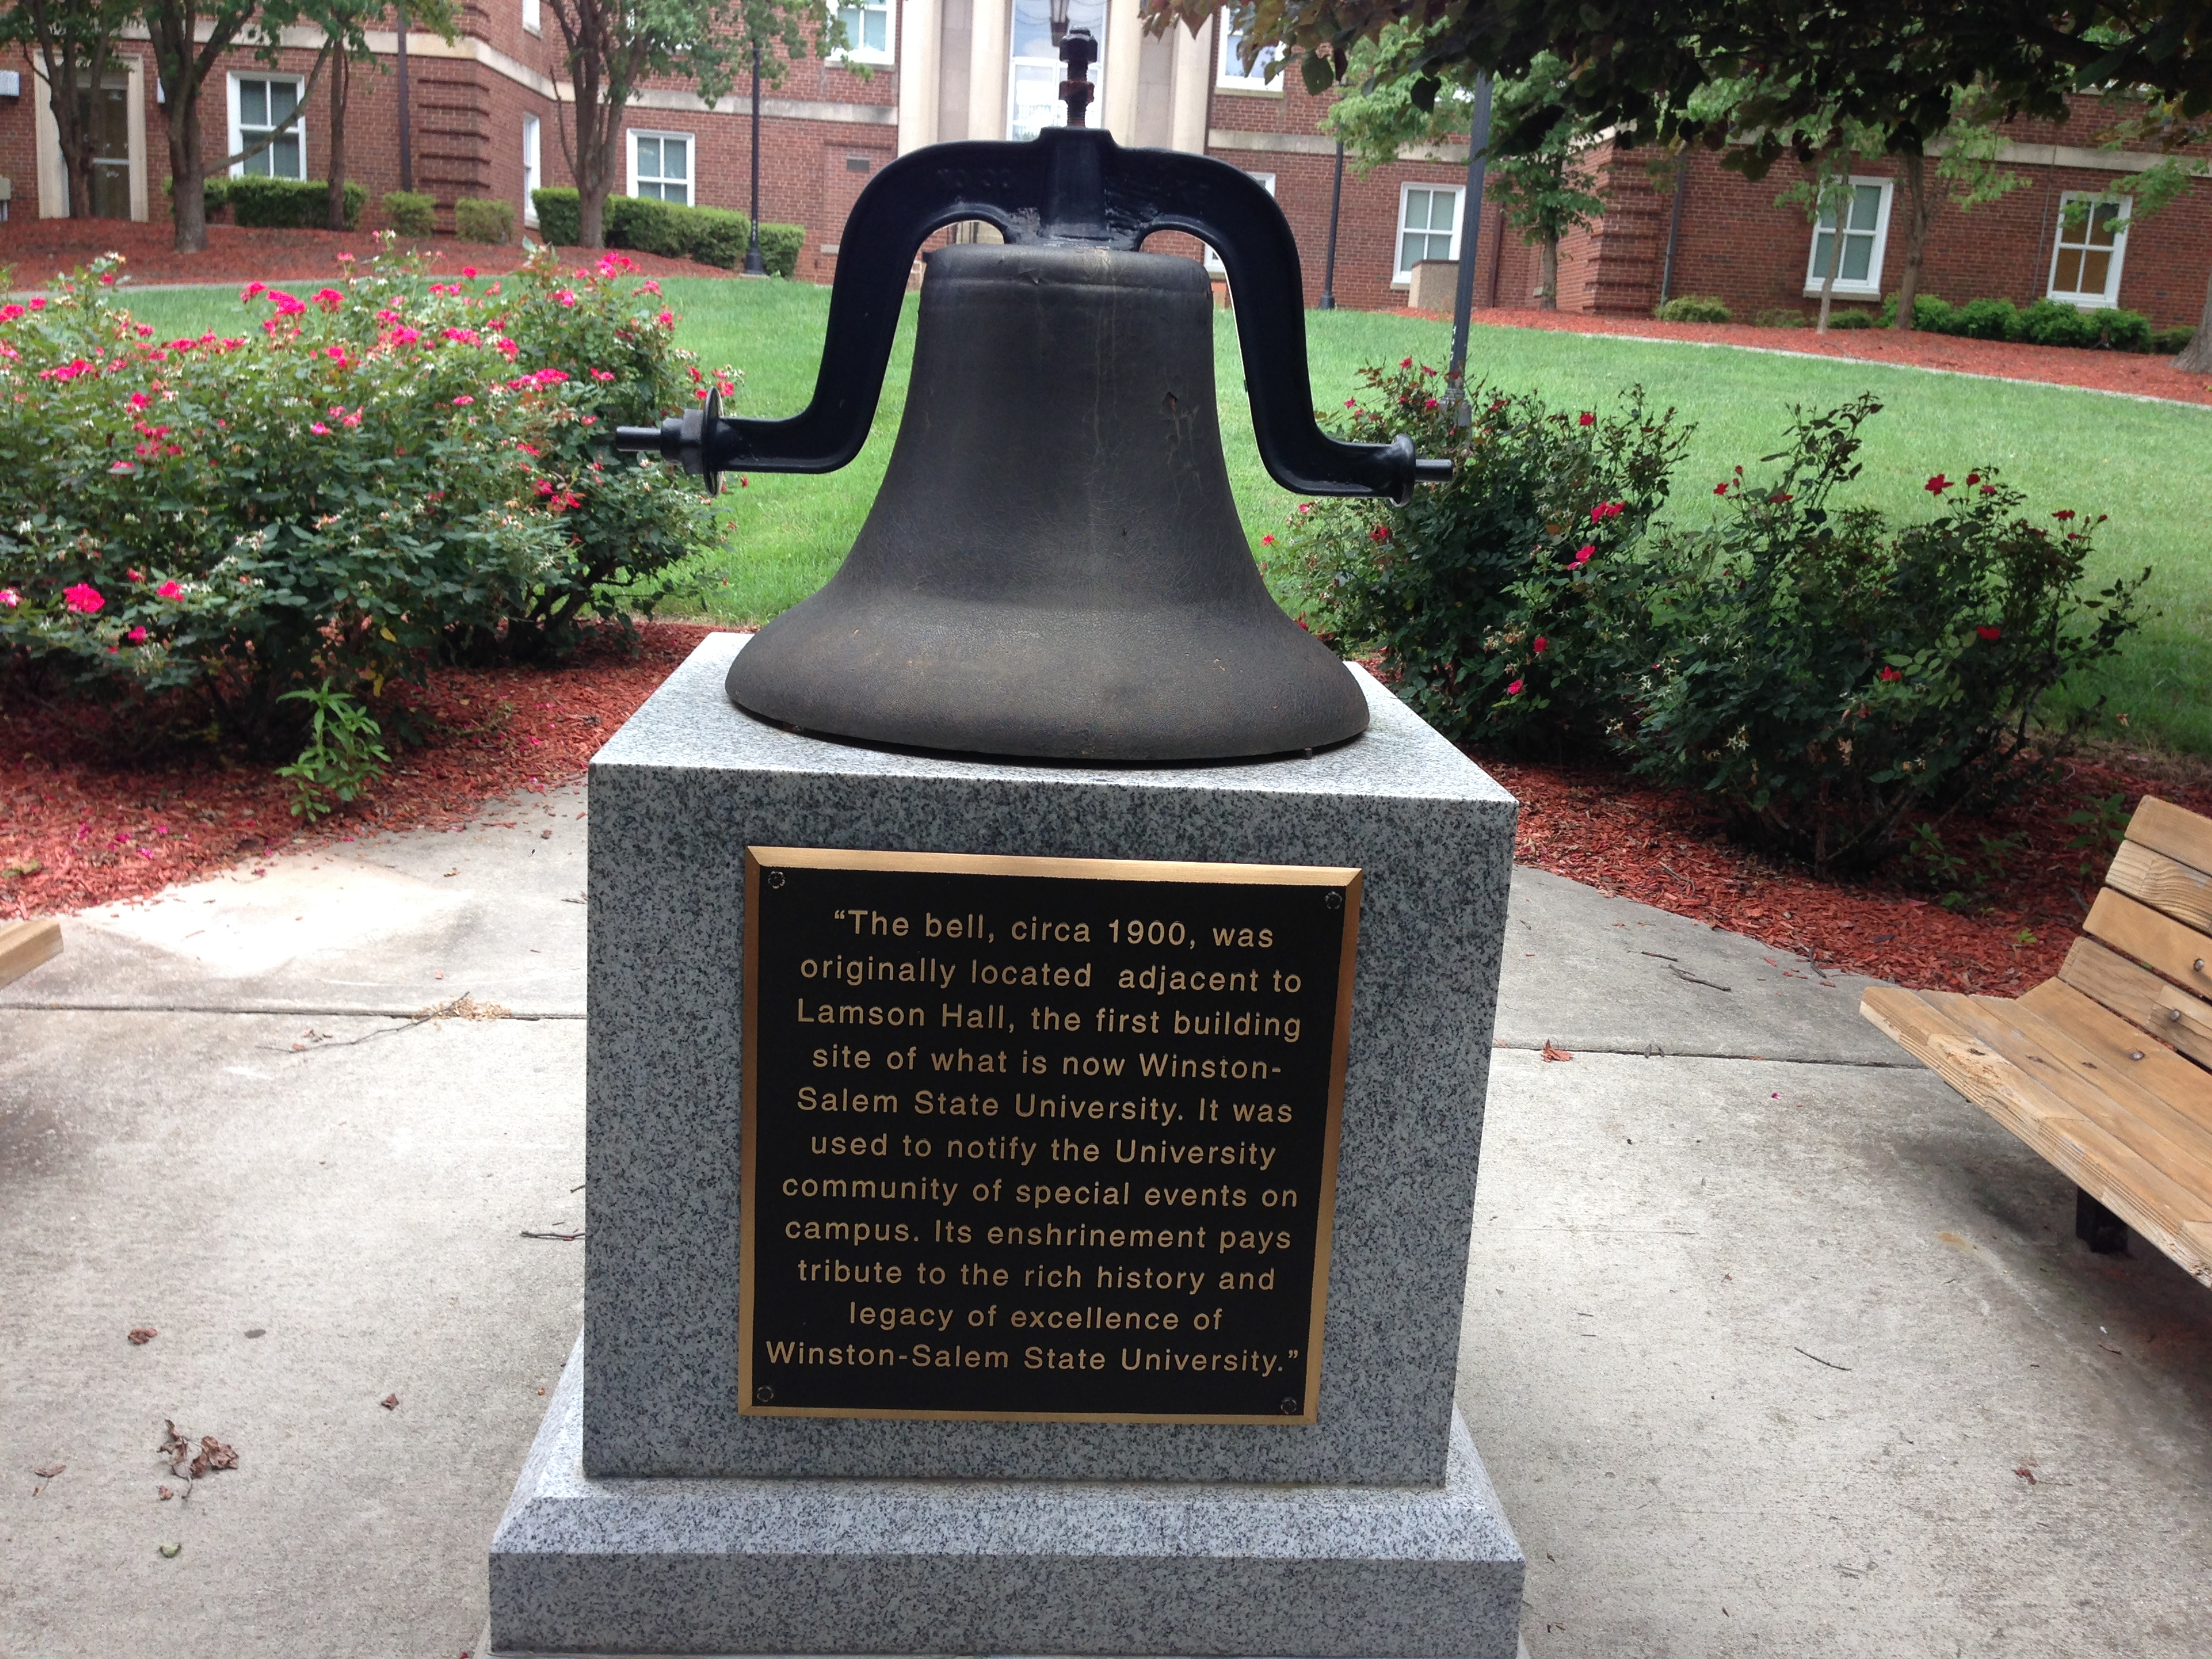 This bell was first used to call students of the Slater Industrial and State Normal School to important events.  It is now located on the campus of Winston-Salem State University.